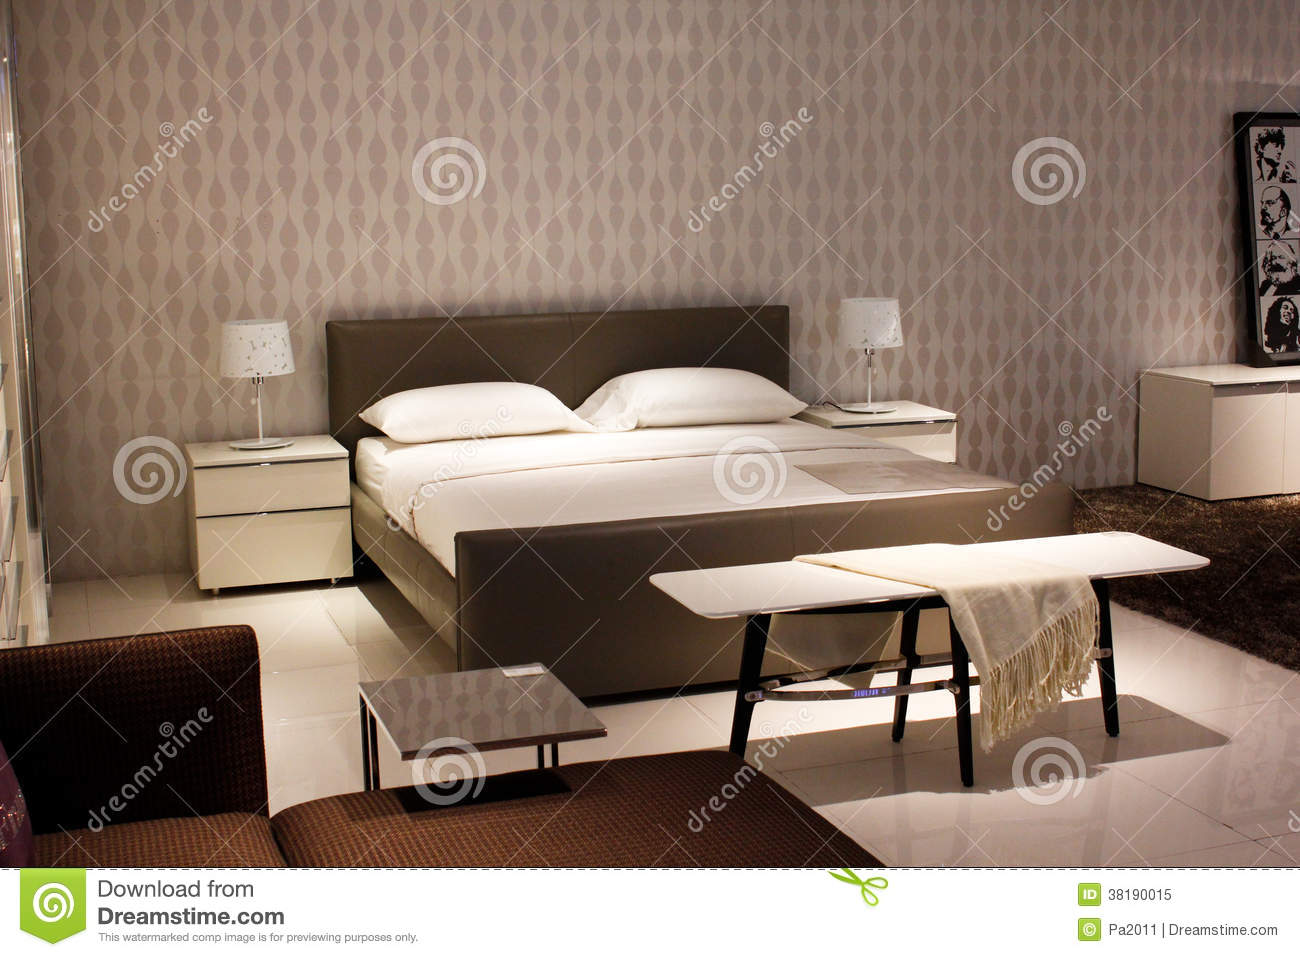 Meubles modernes chinois de style chambre coucher image stock image du int rieurs for Chambre a coucher style